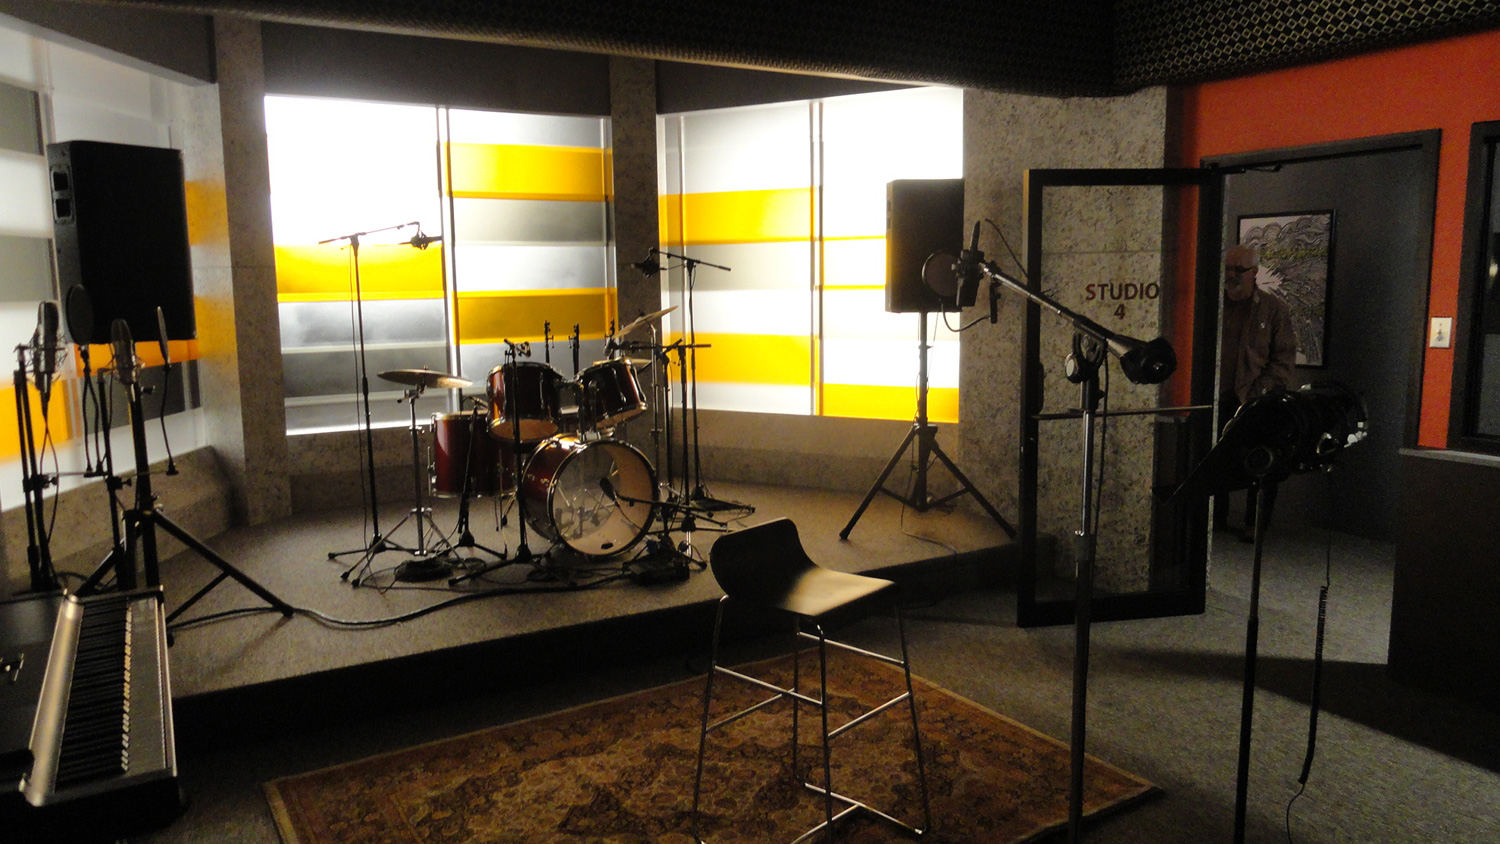 A detail of the session room with it's glowing backlit wall in the Atlanta Records recording studio set.